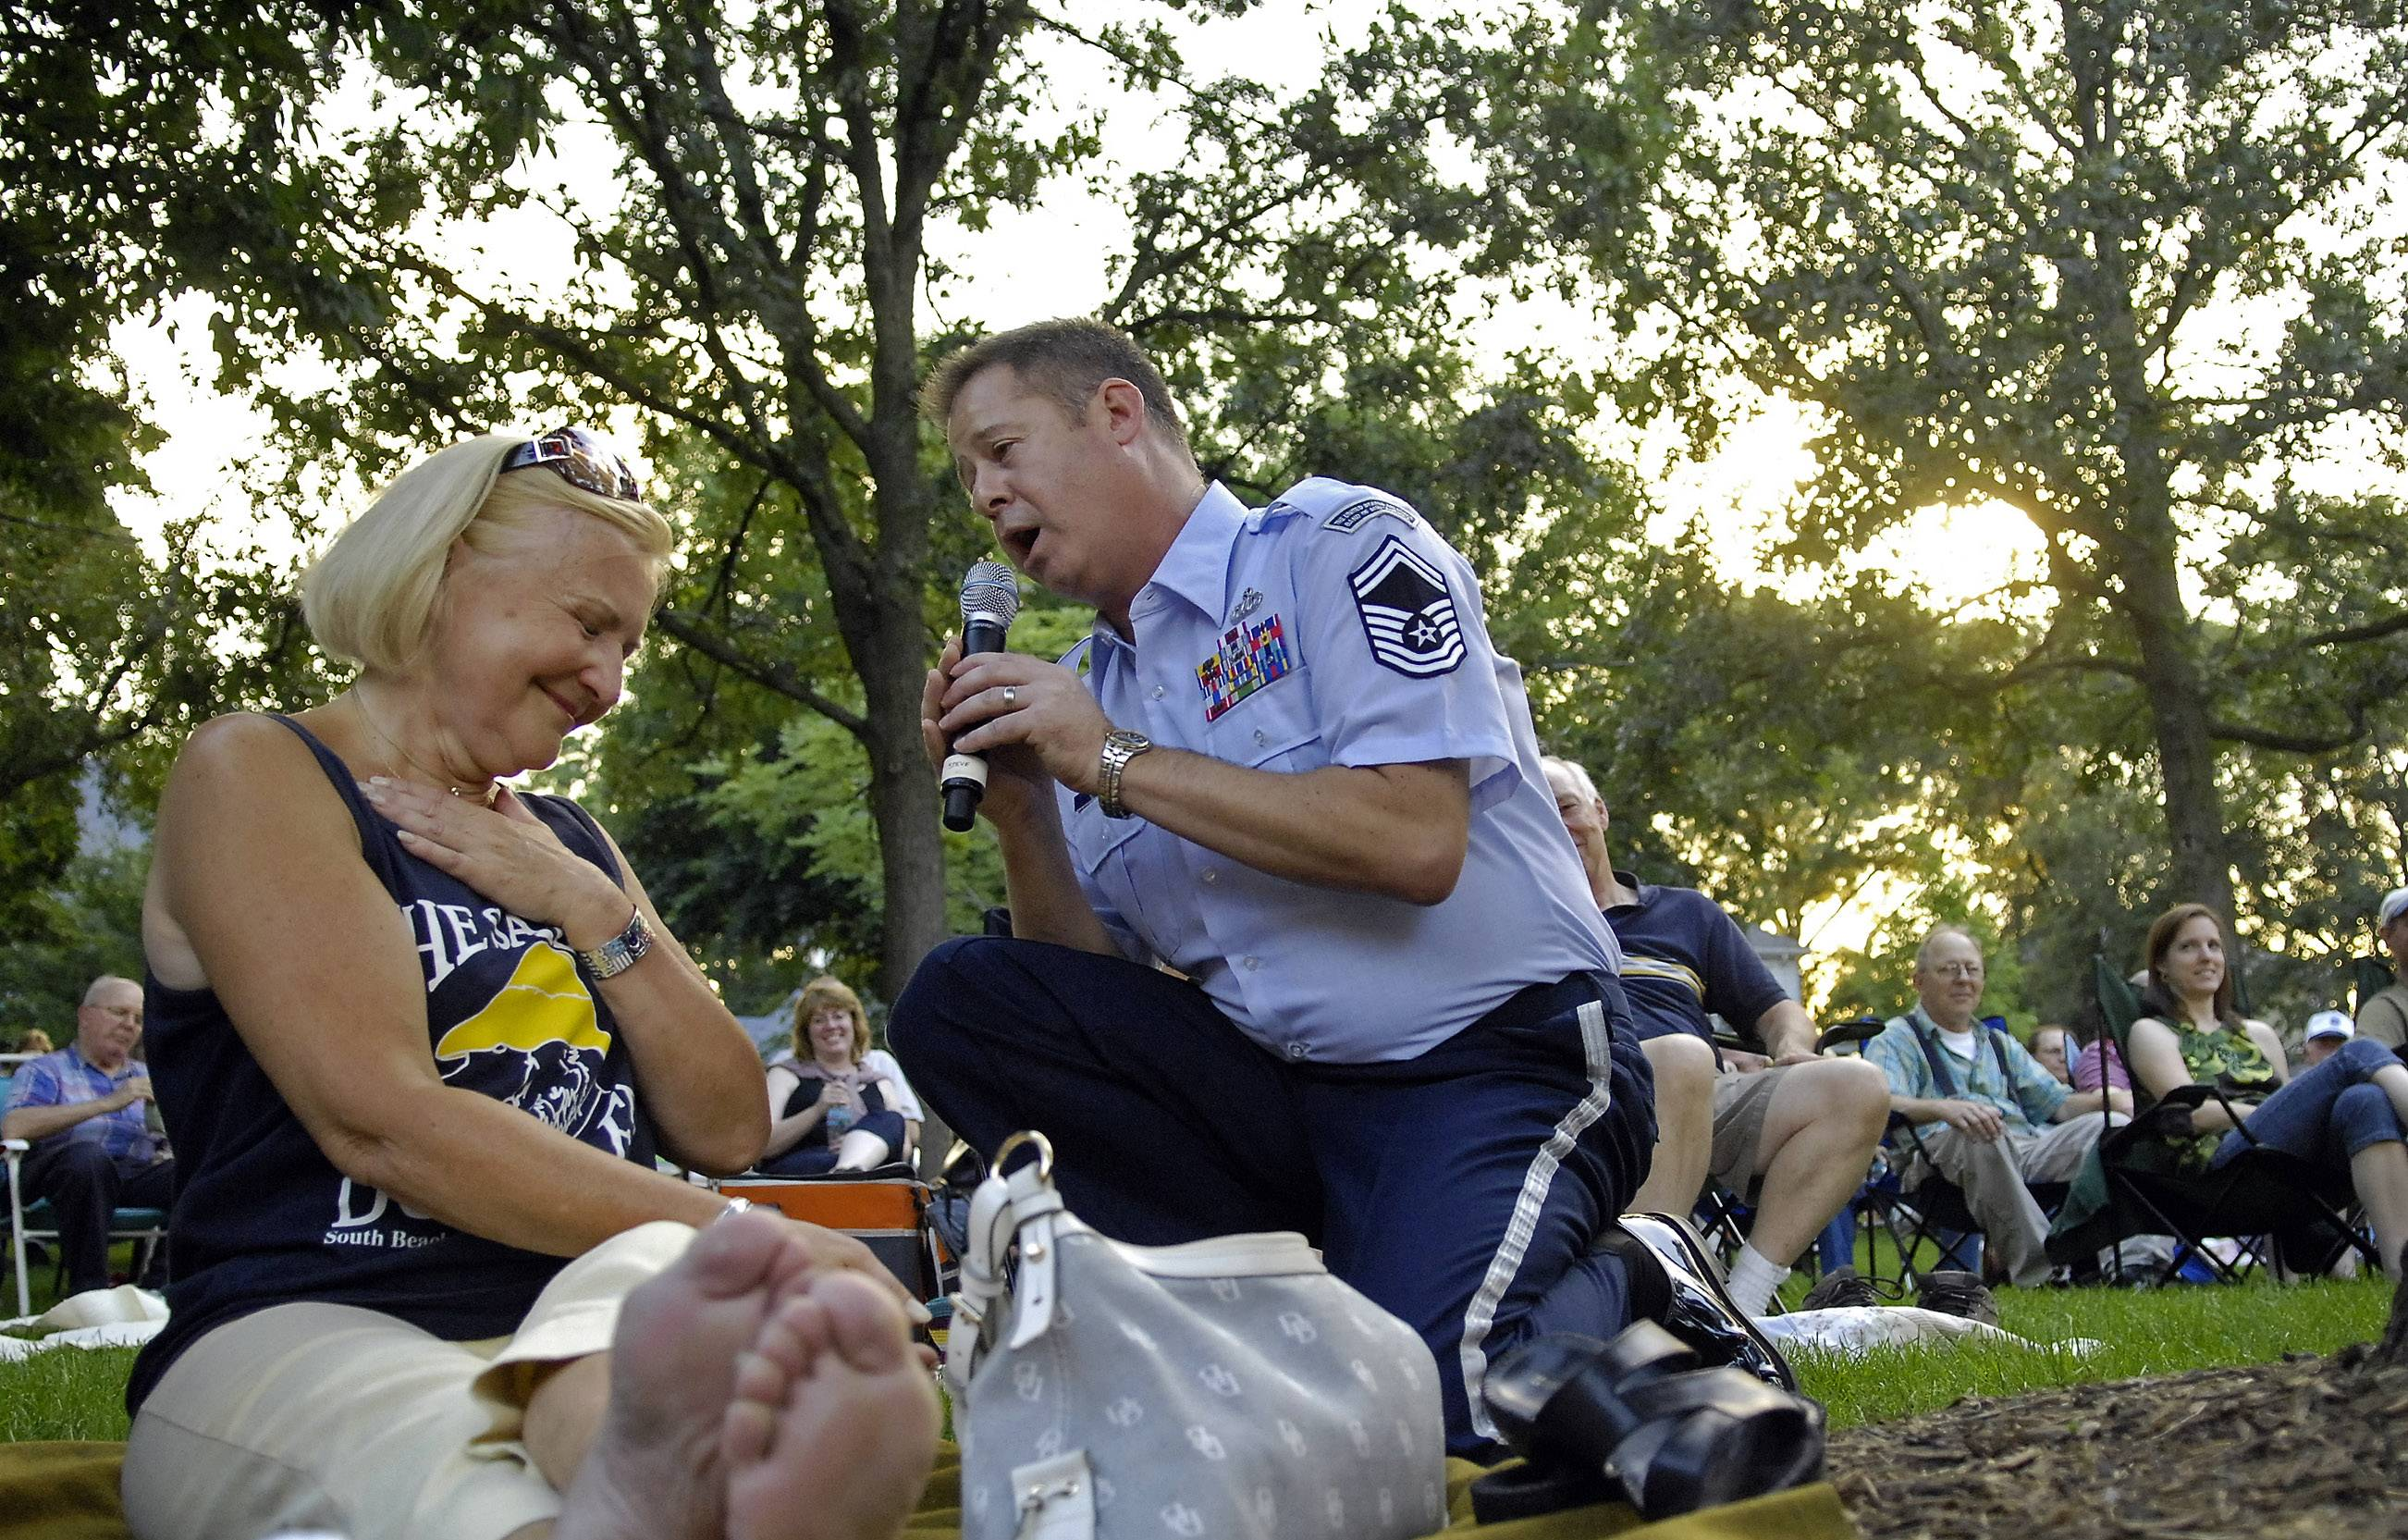 Natalie Woodward of Geneva is touched as Senior Master Sgt. Steve Thulon serenades her while the U.S. Air Force Band plays the Concert in the Park series in 2010 at Lincoln Park in St. Charles.